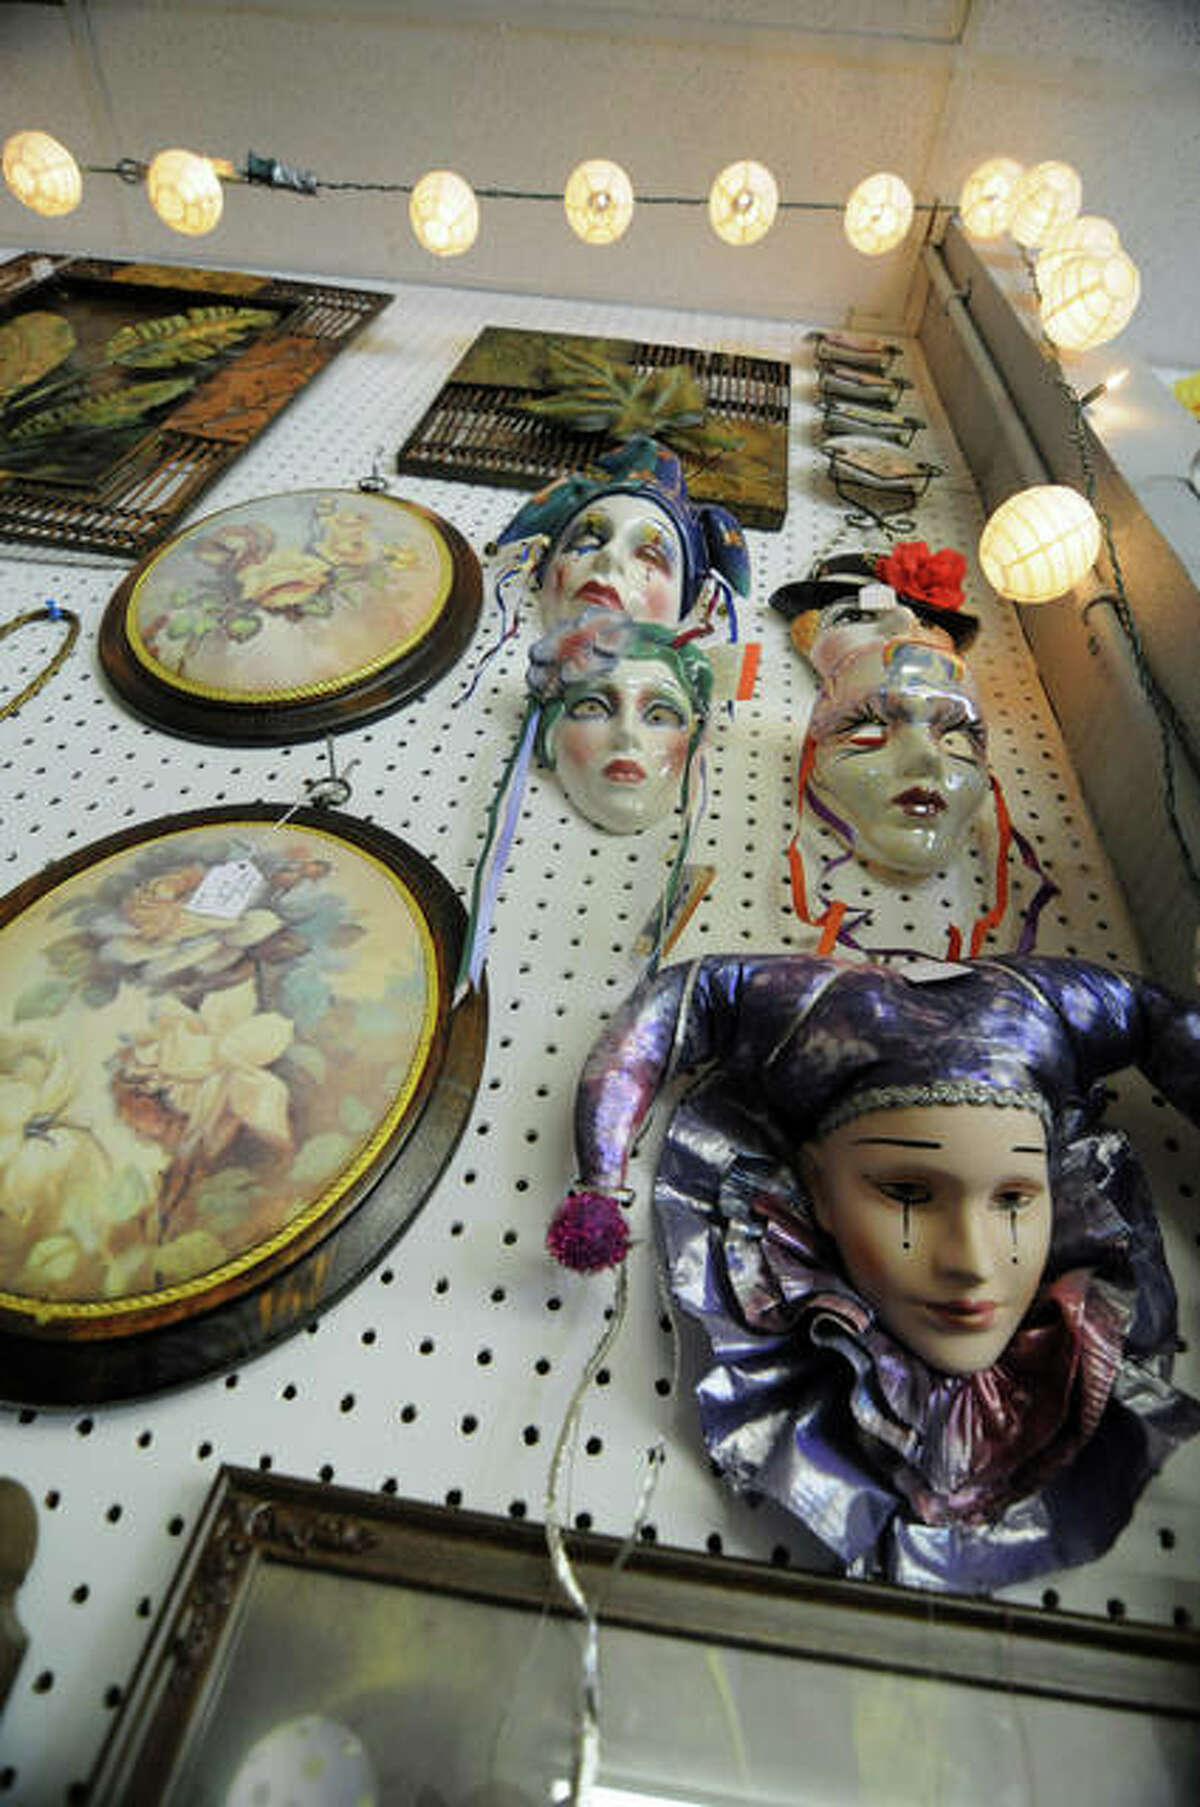 Decorative theatrical masks, folk paintings and more are among the many items for sale at The Hangar Emporium. The new East Alton business held a grand opening Saturday.